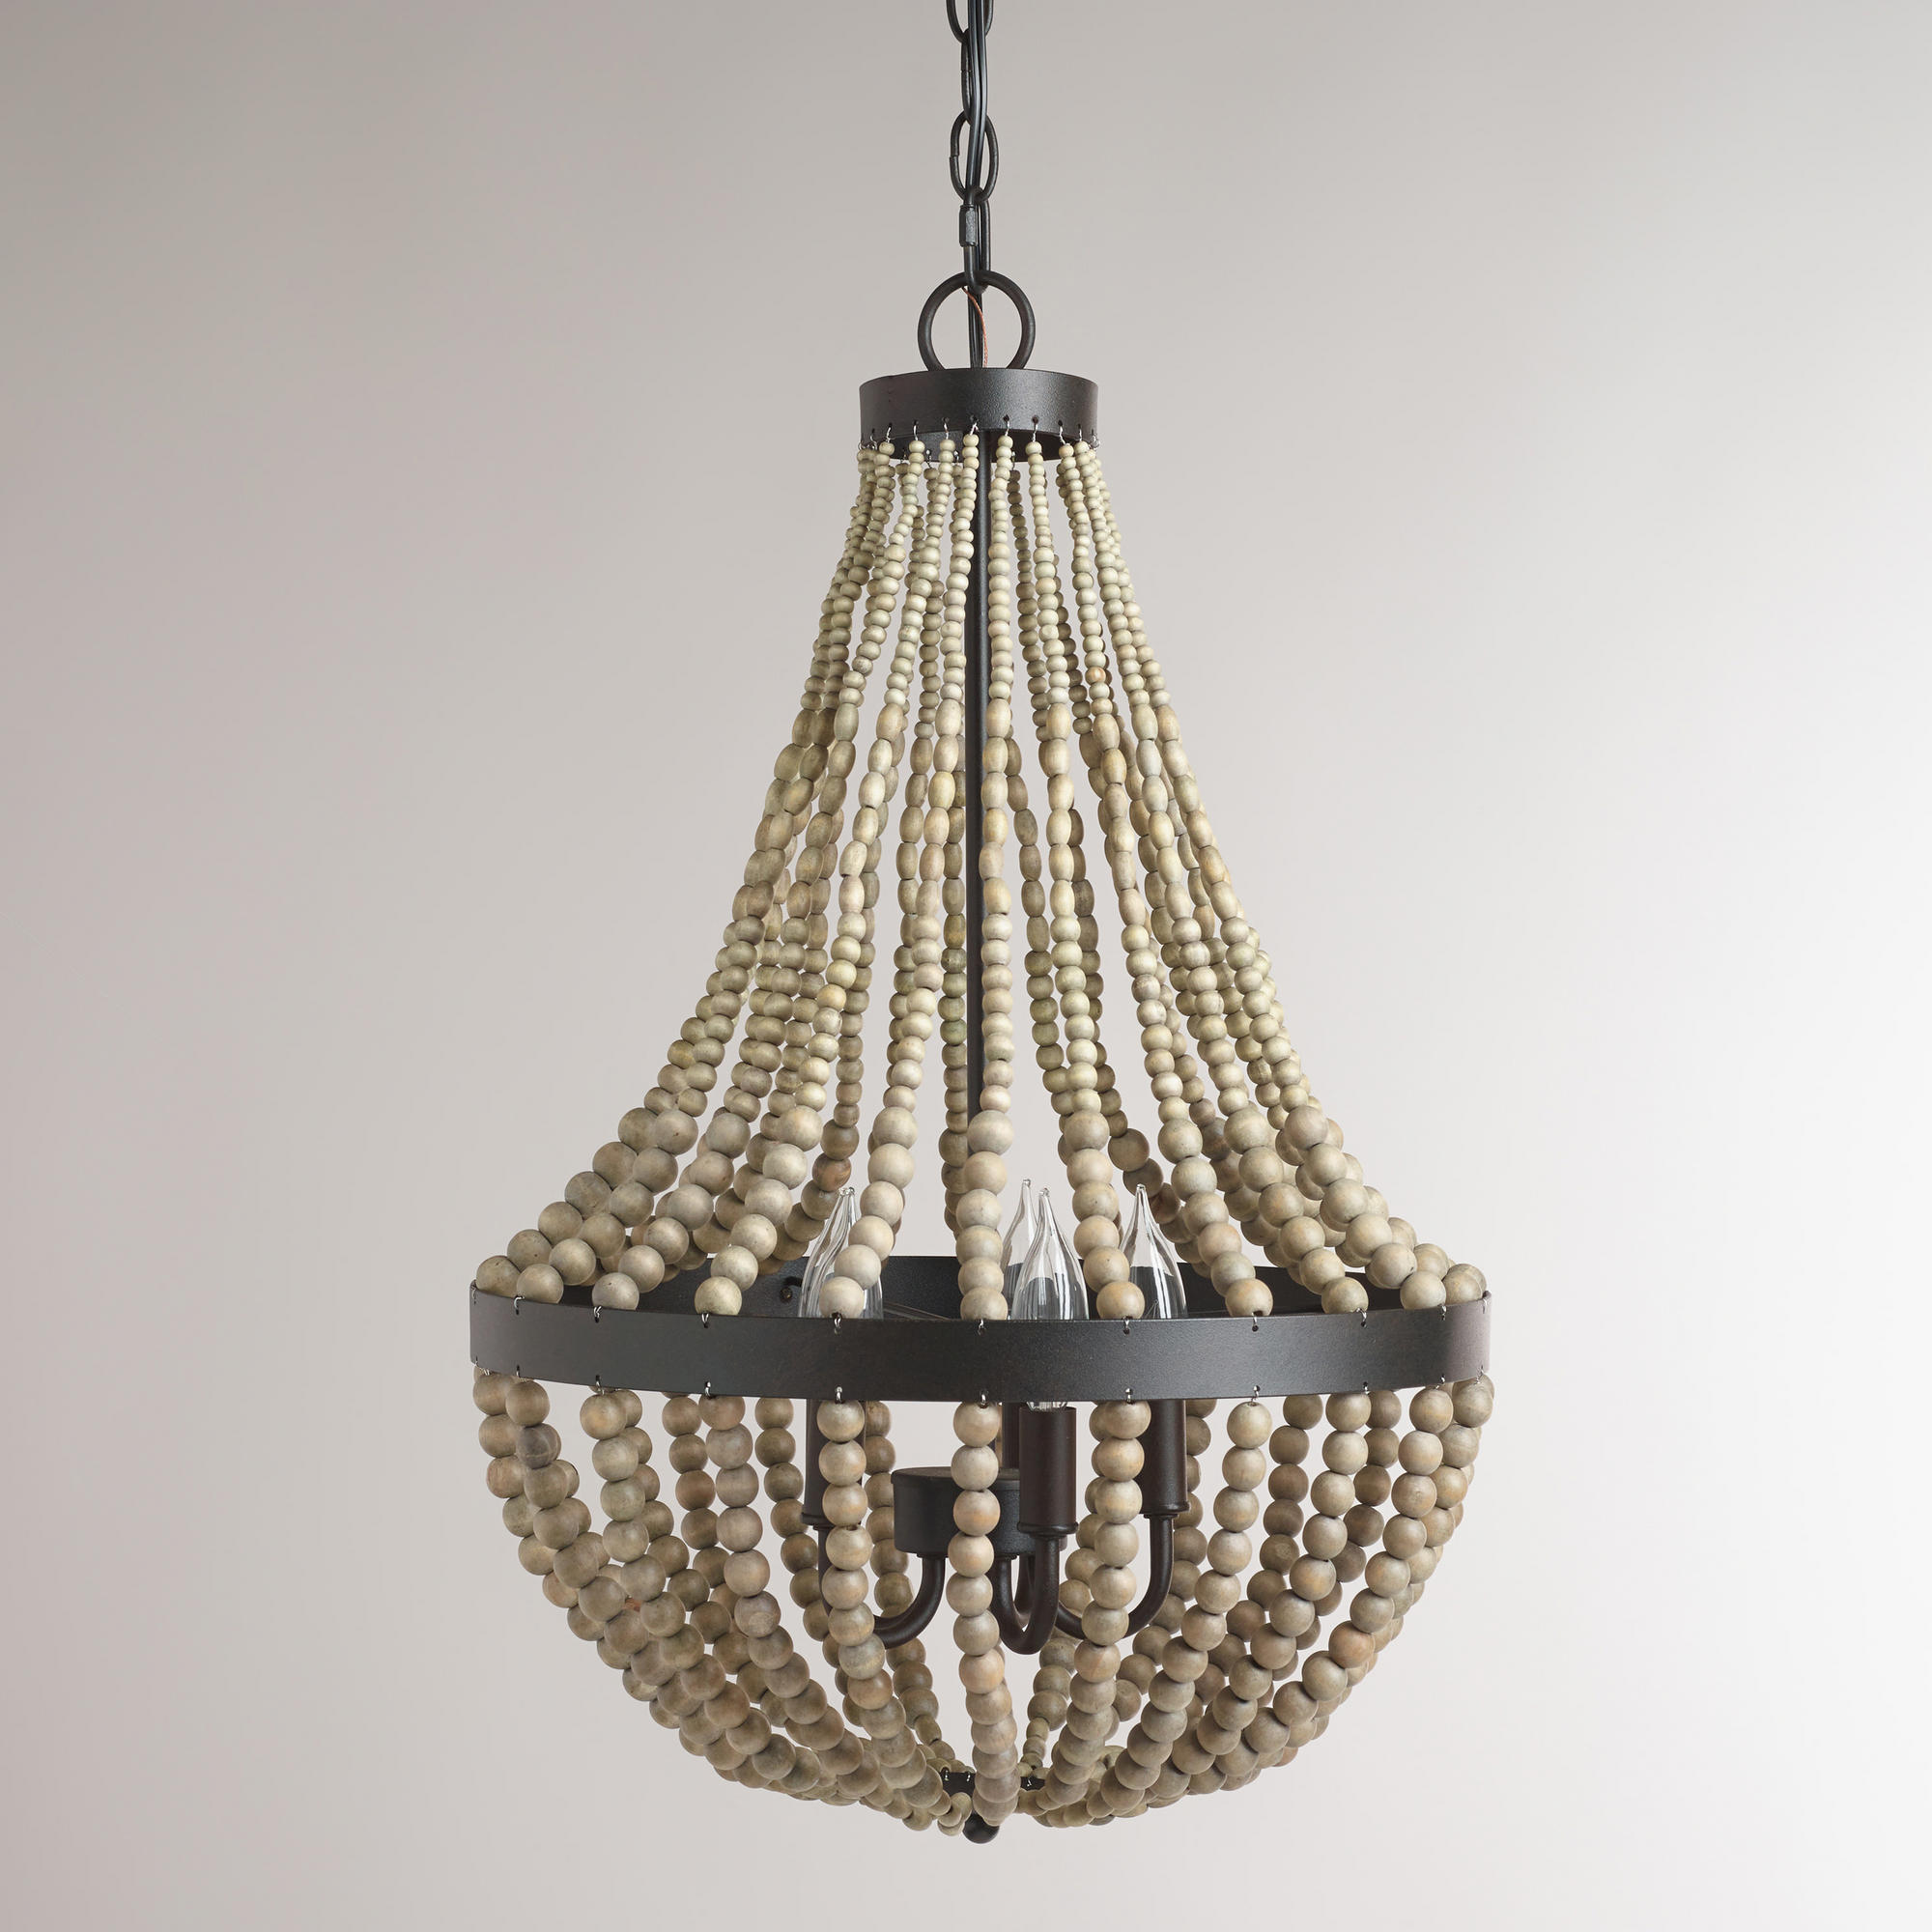 Cozy white wood bead chandelier with Ceiling Light Fixture Furnishing for living room Ideas